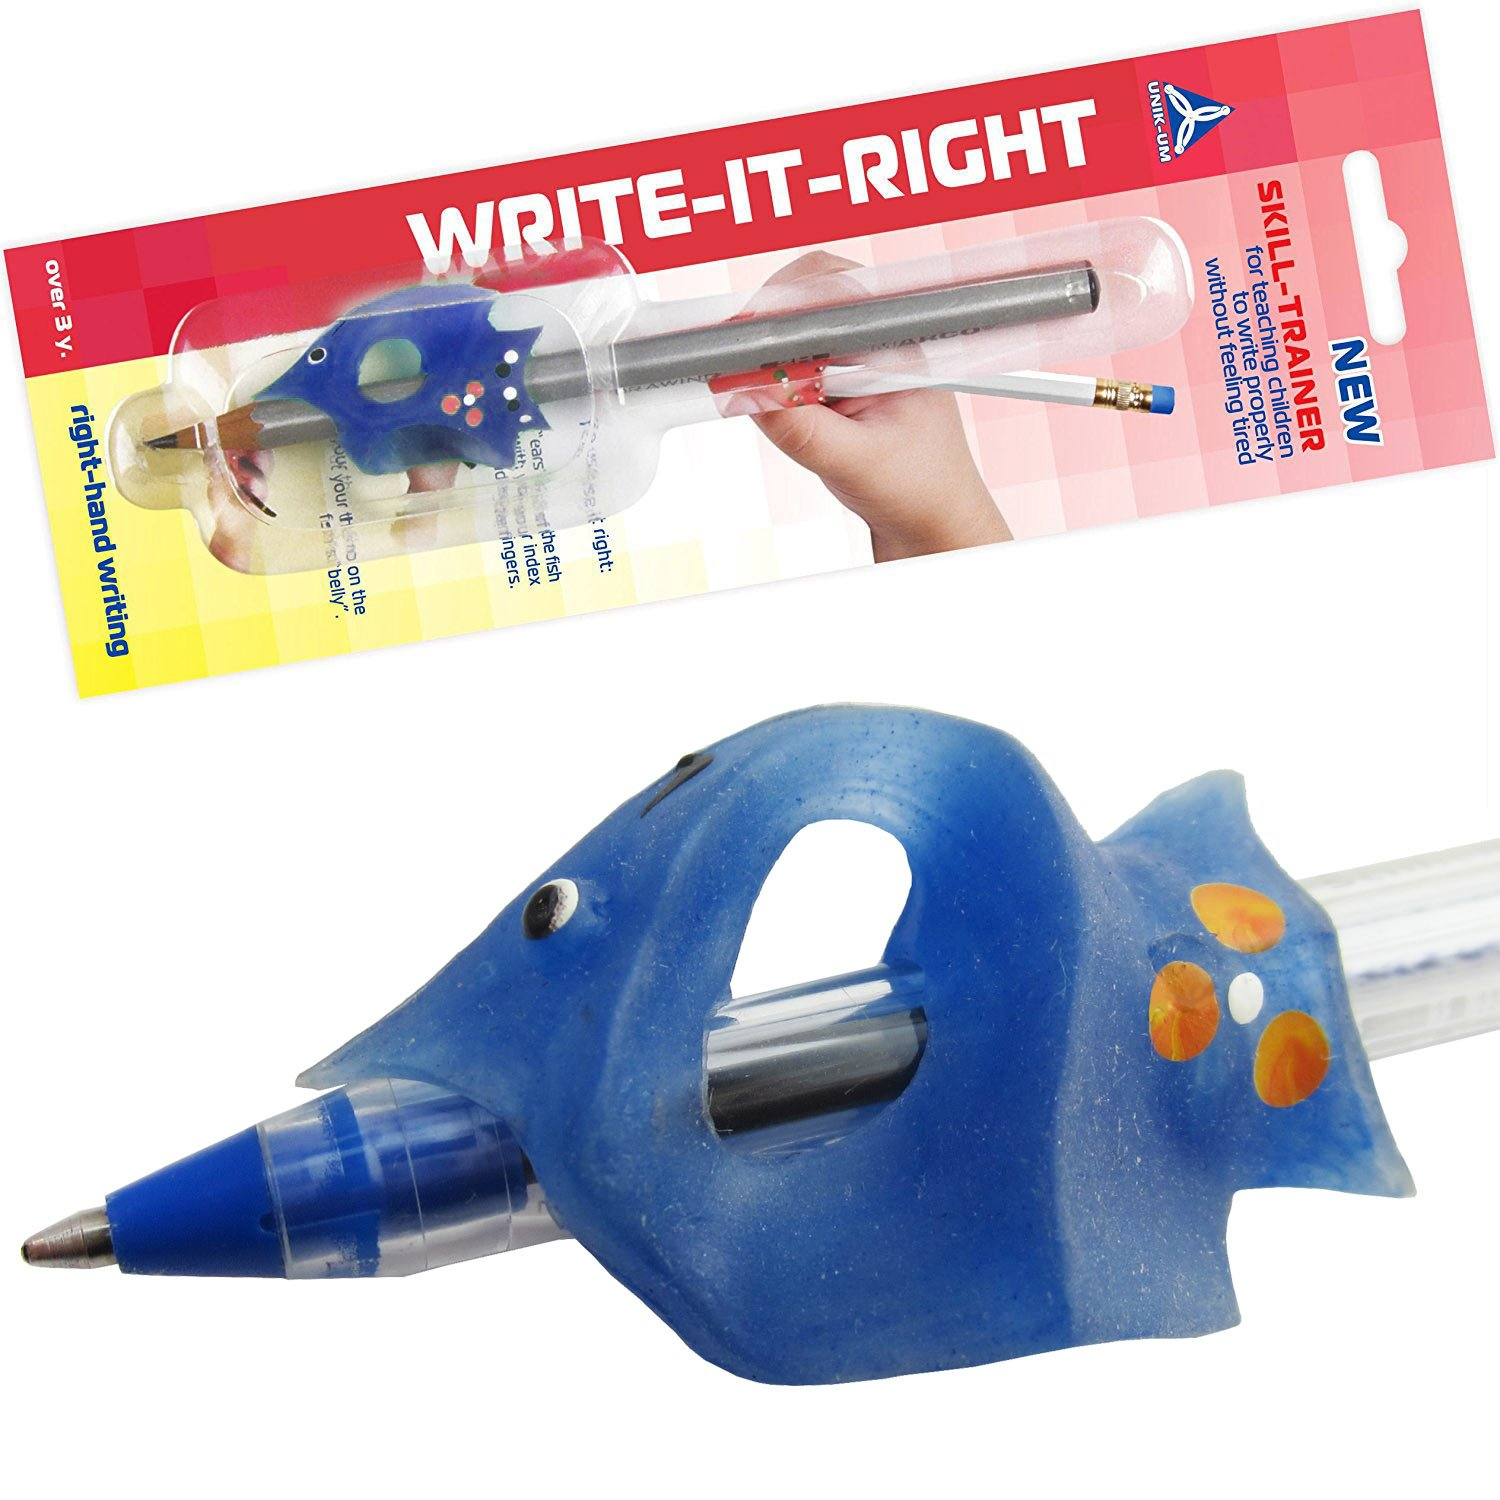 Unique Pencil Grip for Kids - Writing Aids with Control The Angle of Fingers - Write-IT-Right Skill-Trainer for Right-Handed Writing (4783) inTemenos